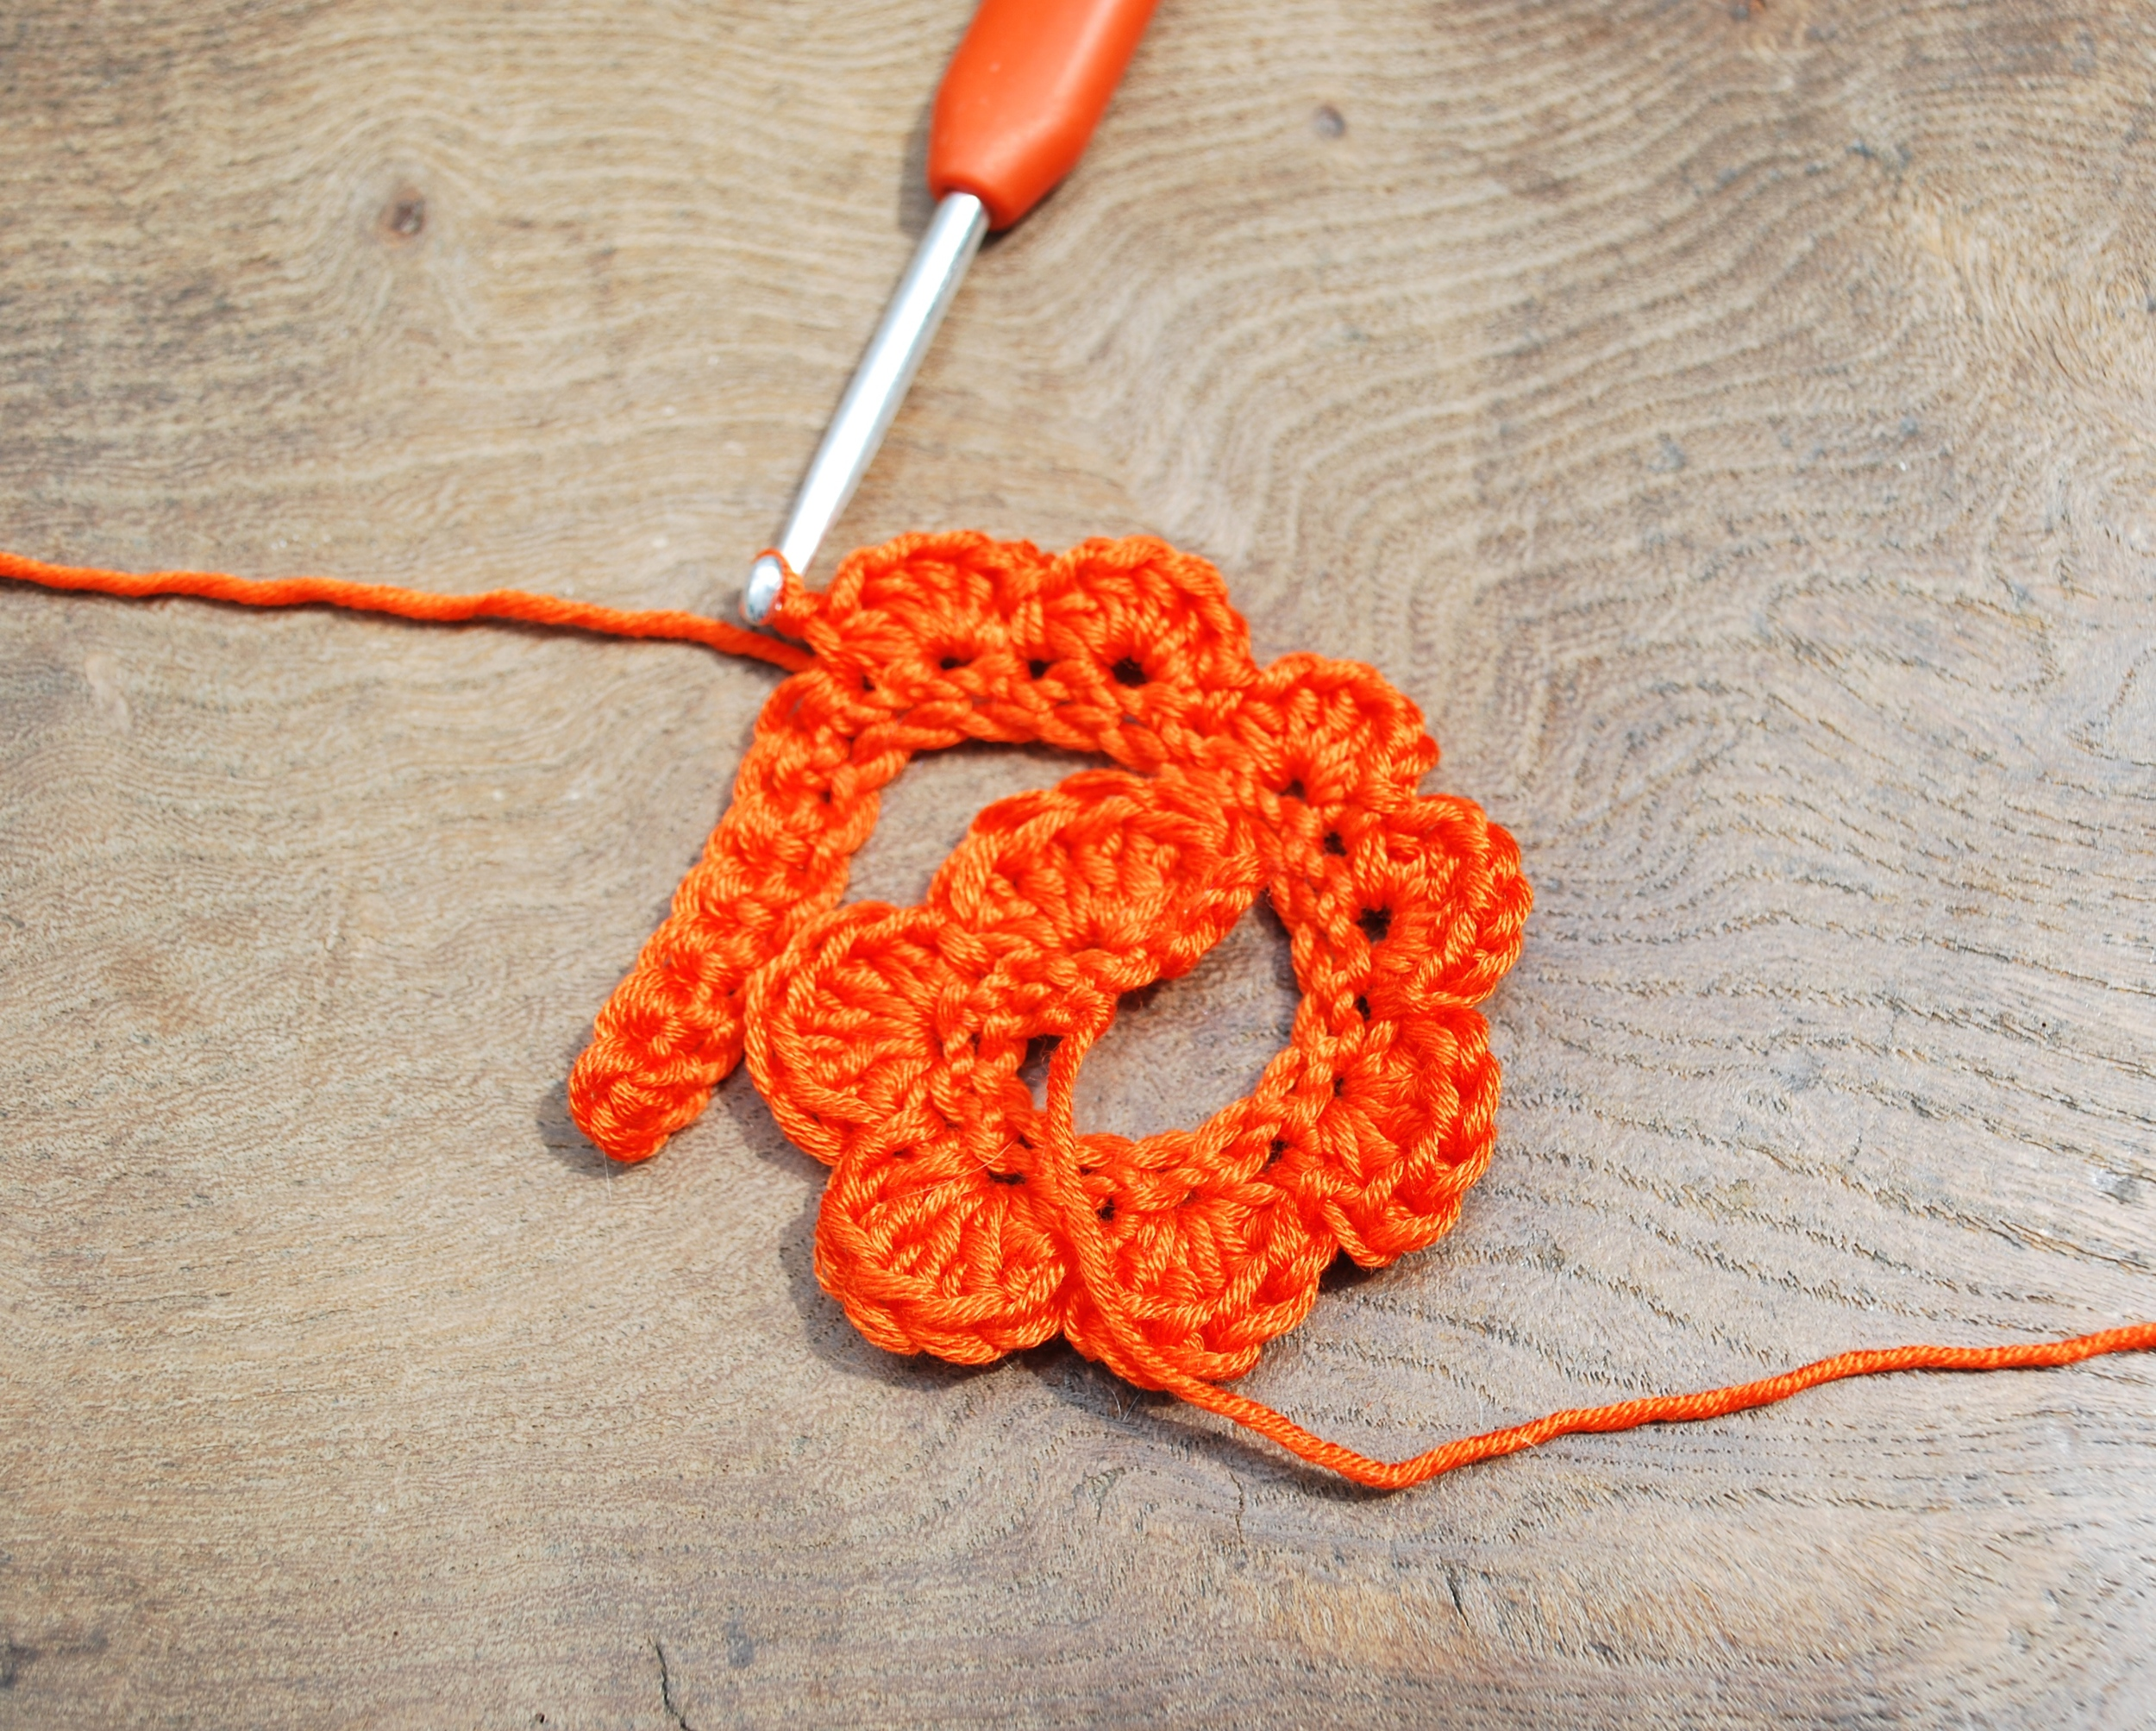 Crochet Rose tutorial step 5